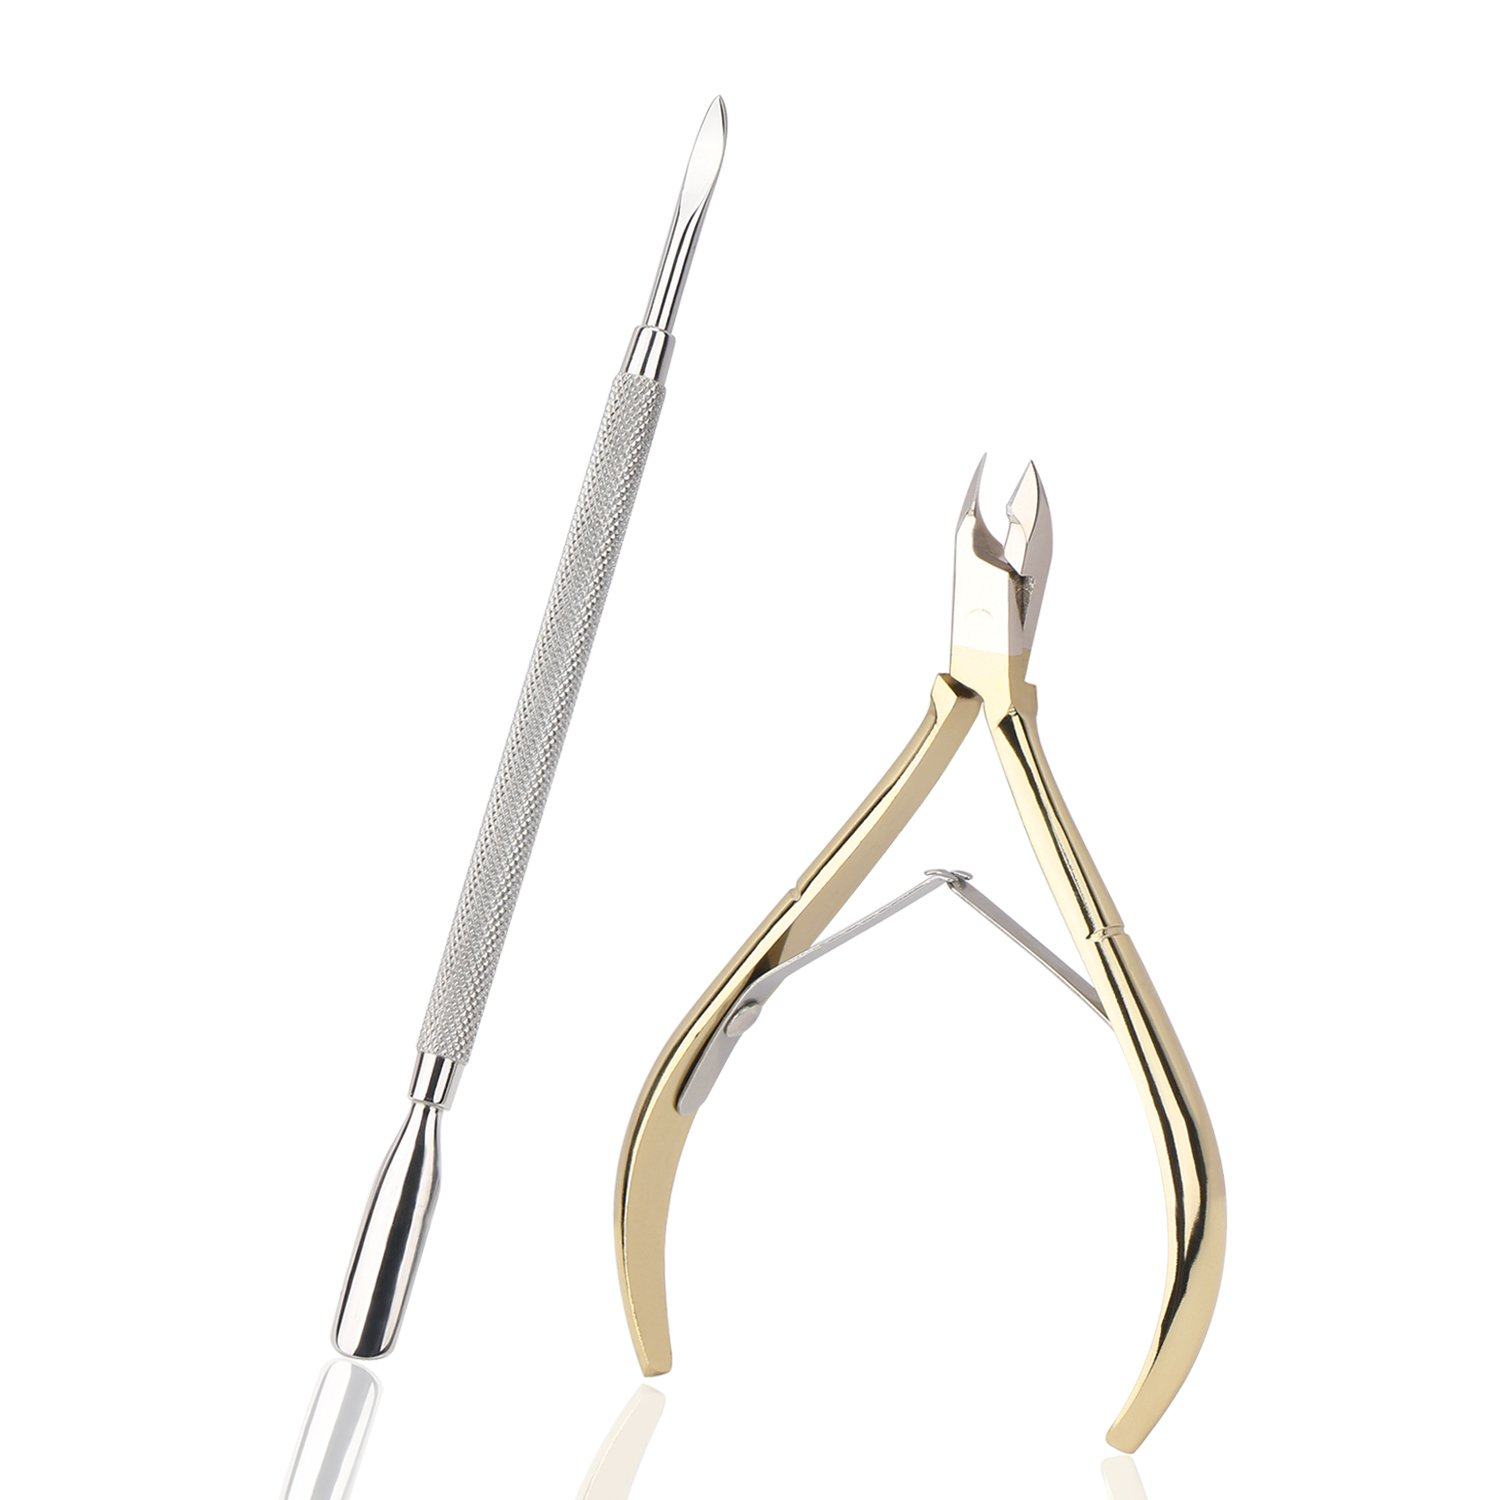 "Gold Plated Cuticle Nipper, Cuticle Pusher Cleaner, Manicure 1/4"" Jaw Cuticle Cutter Pedicure Tools, Nail Clippers Remove Hangnail Dead Skin for Nail Salon Segbeauty"